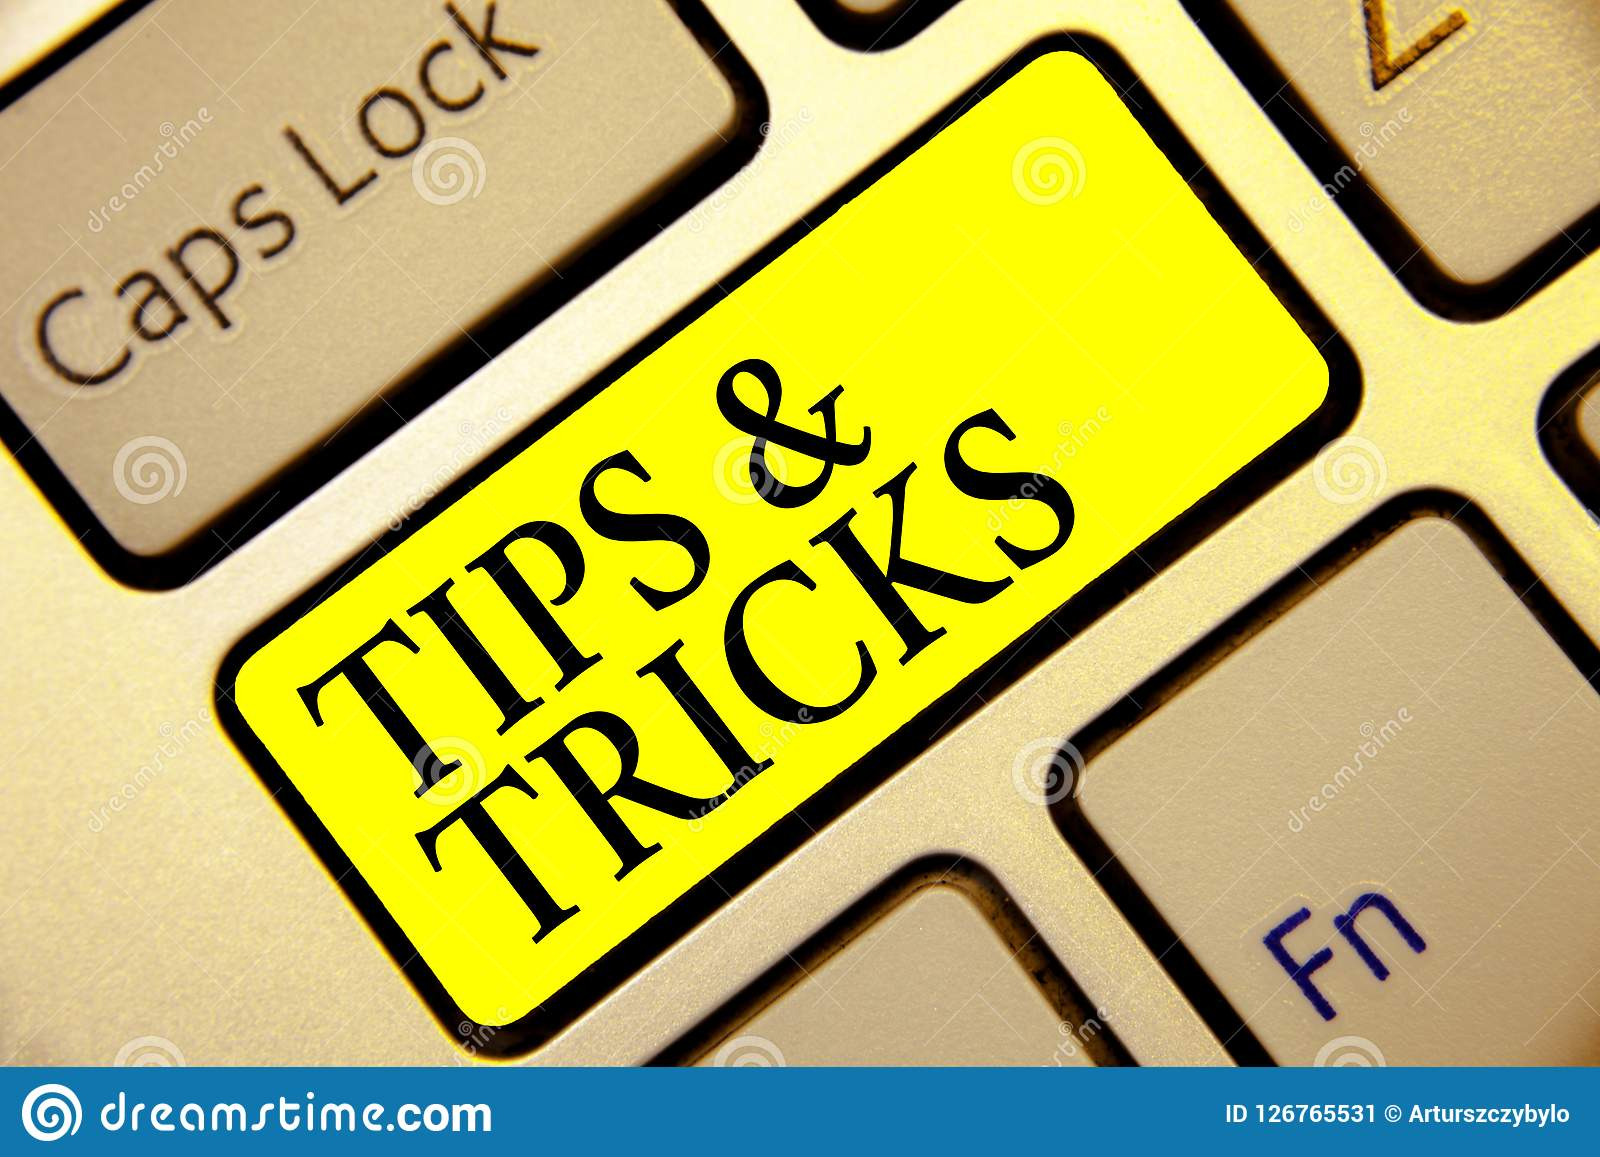 Text sign showing Tips and Tricks. Conceptual photo Steps Lifehacks Handy advice Recommendations Skills Keyboard yellow key Intent